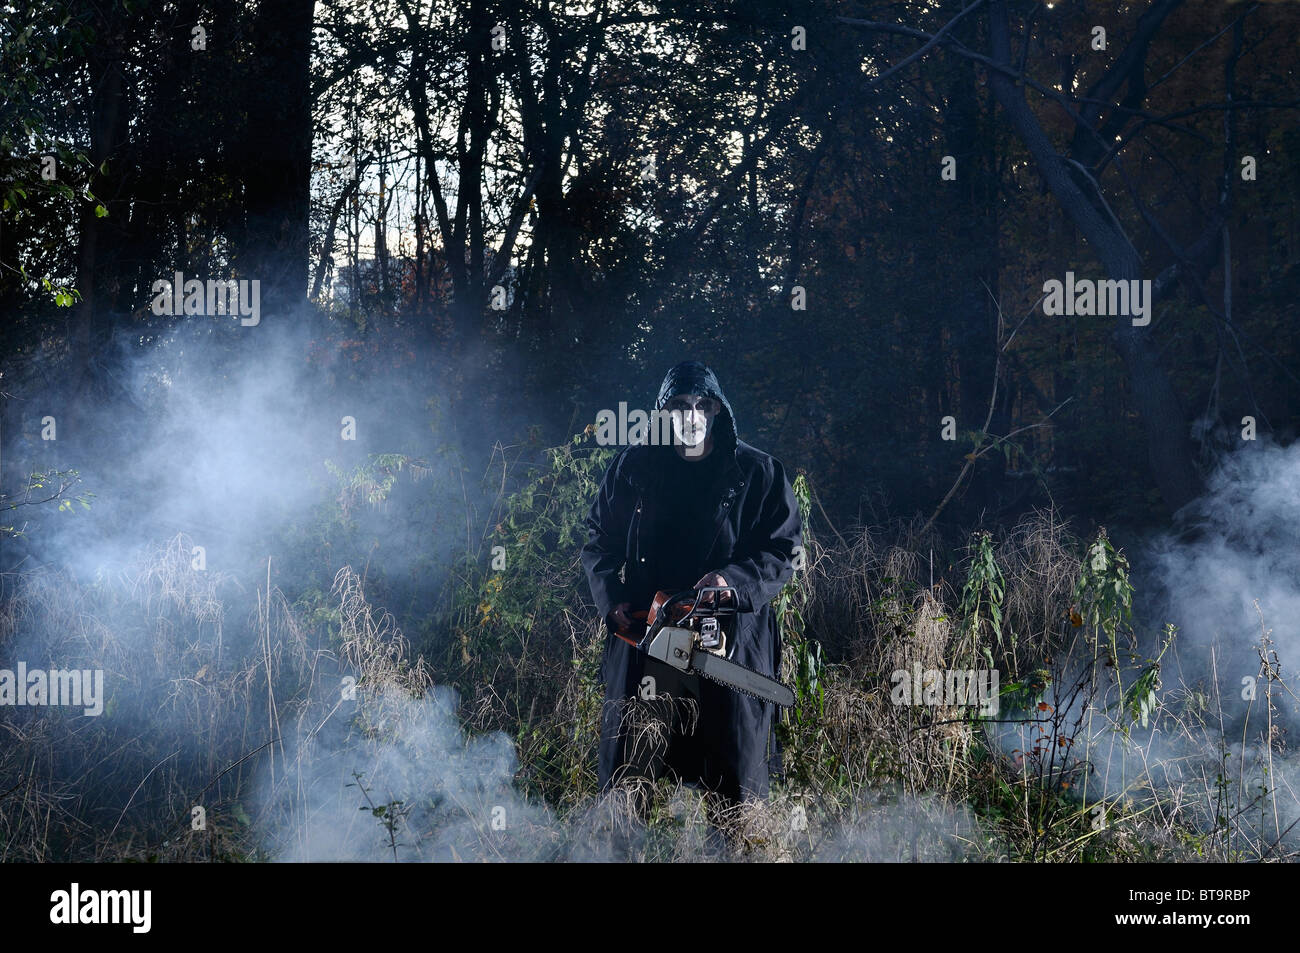 Glaring pale evil man in black coat with a chainsaw in a misty forest in the Fall at Halloween - Stock Image